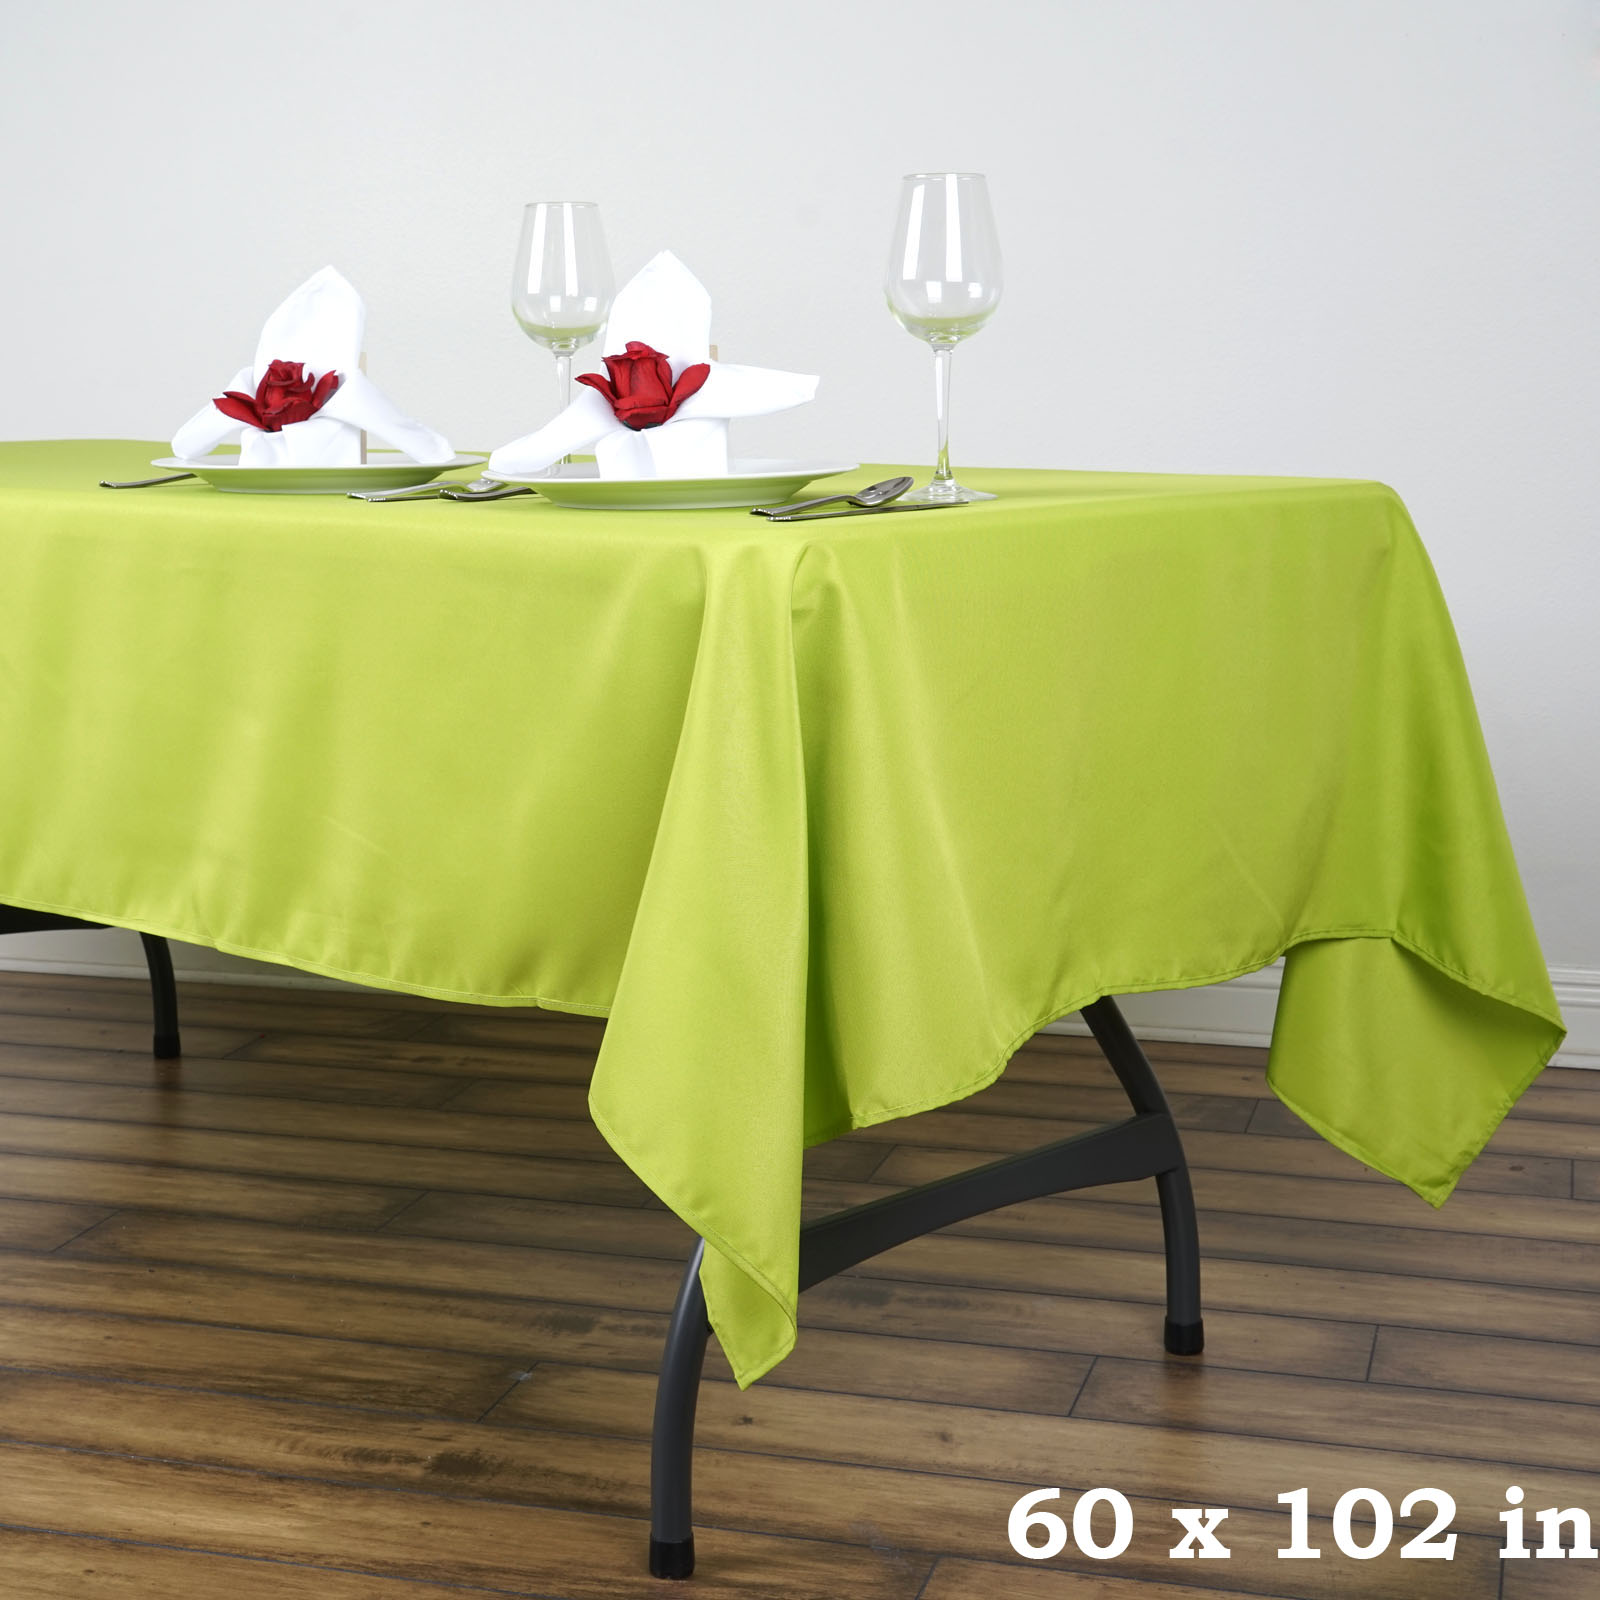 10 pcs 60 x 102 polyester rectangular tablecloths wedding table linens sale. Black Bedroom Furniture Sets. Home Design Ideas